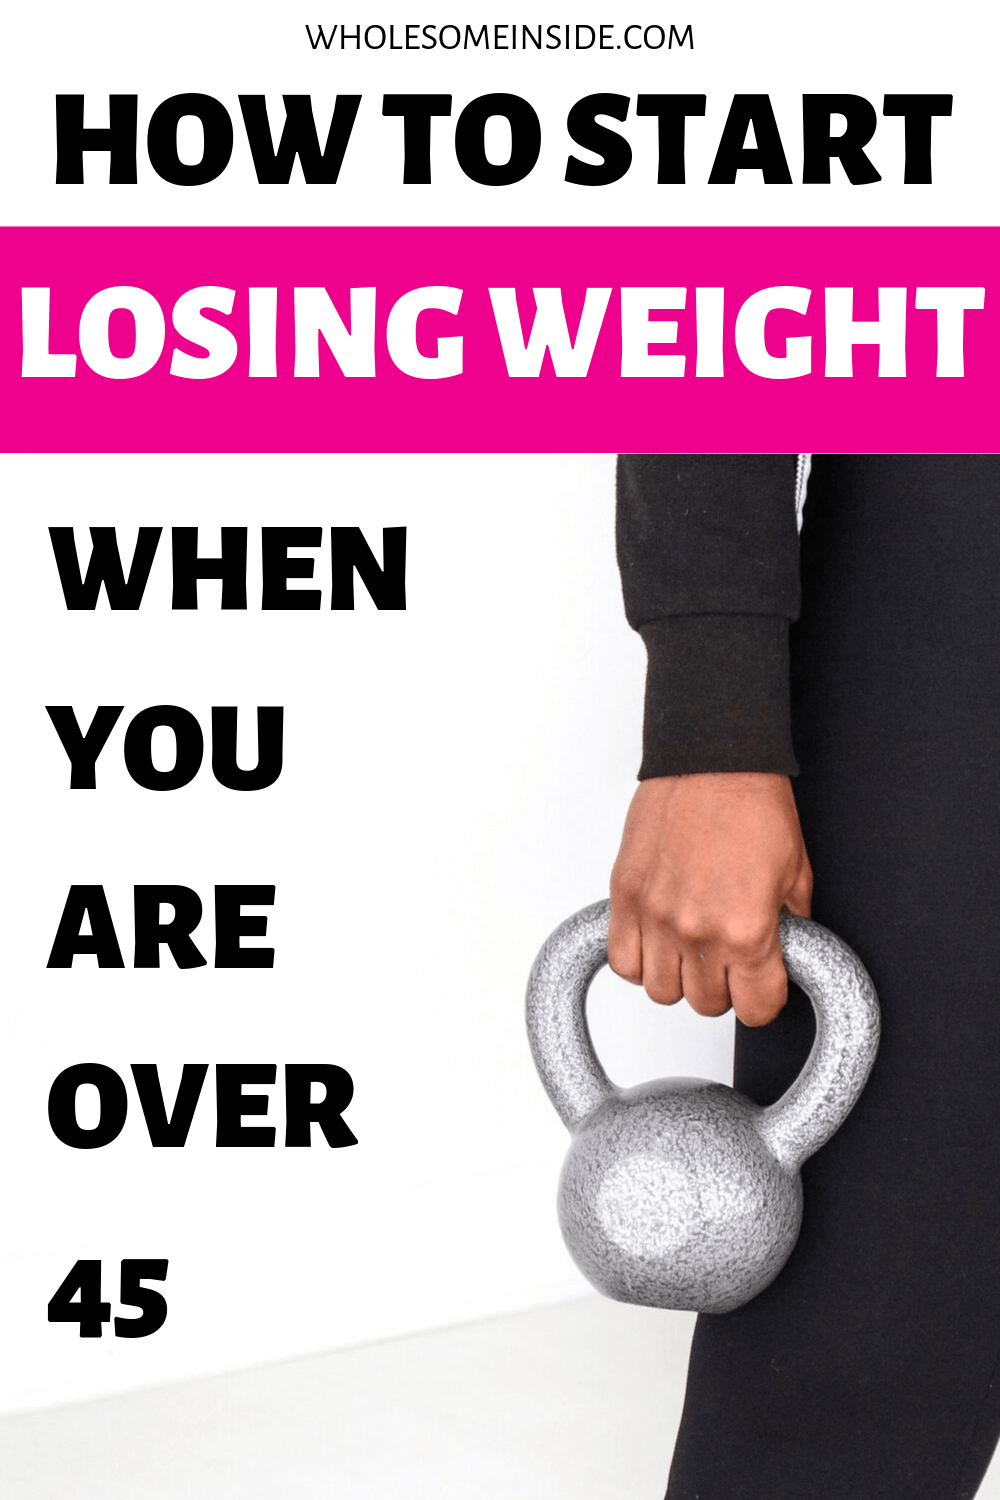 How to lose weight when you are over 45